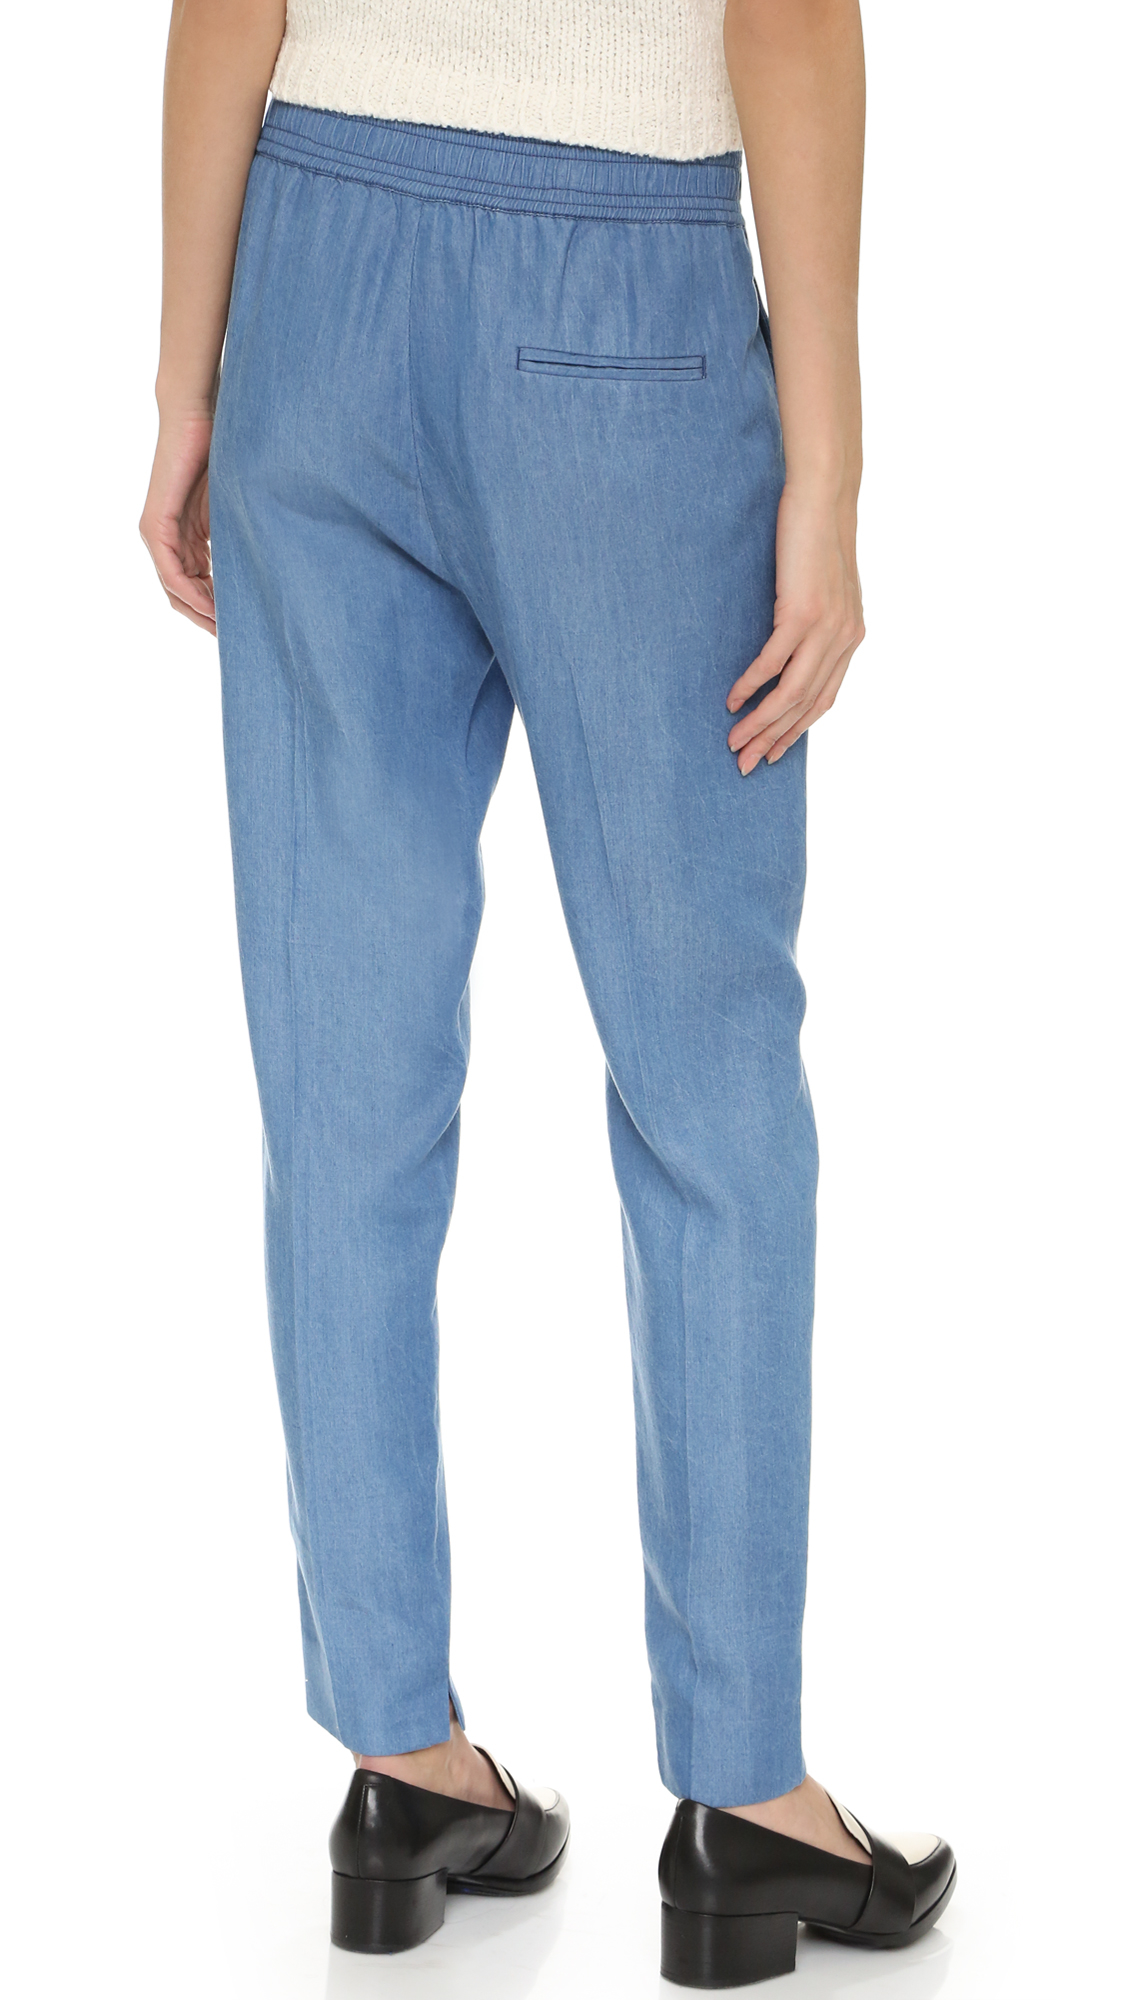 3.1 phillip lim Chambray Pants in Blue | Lyst